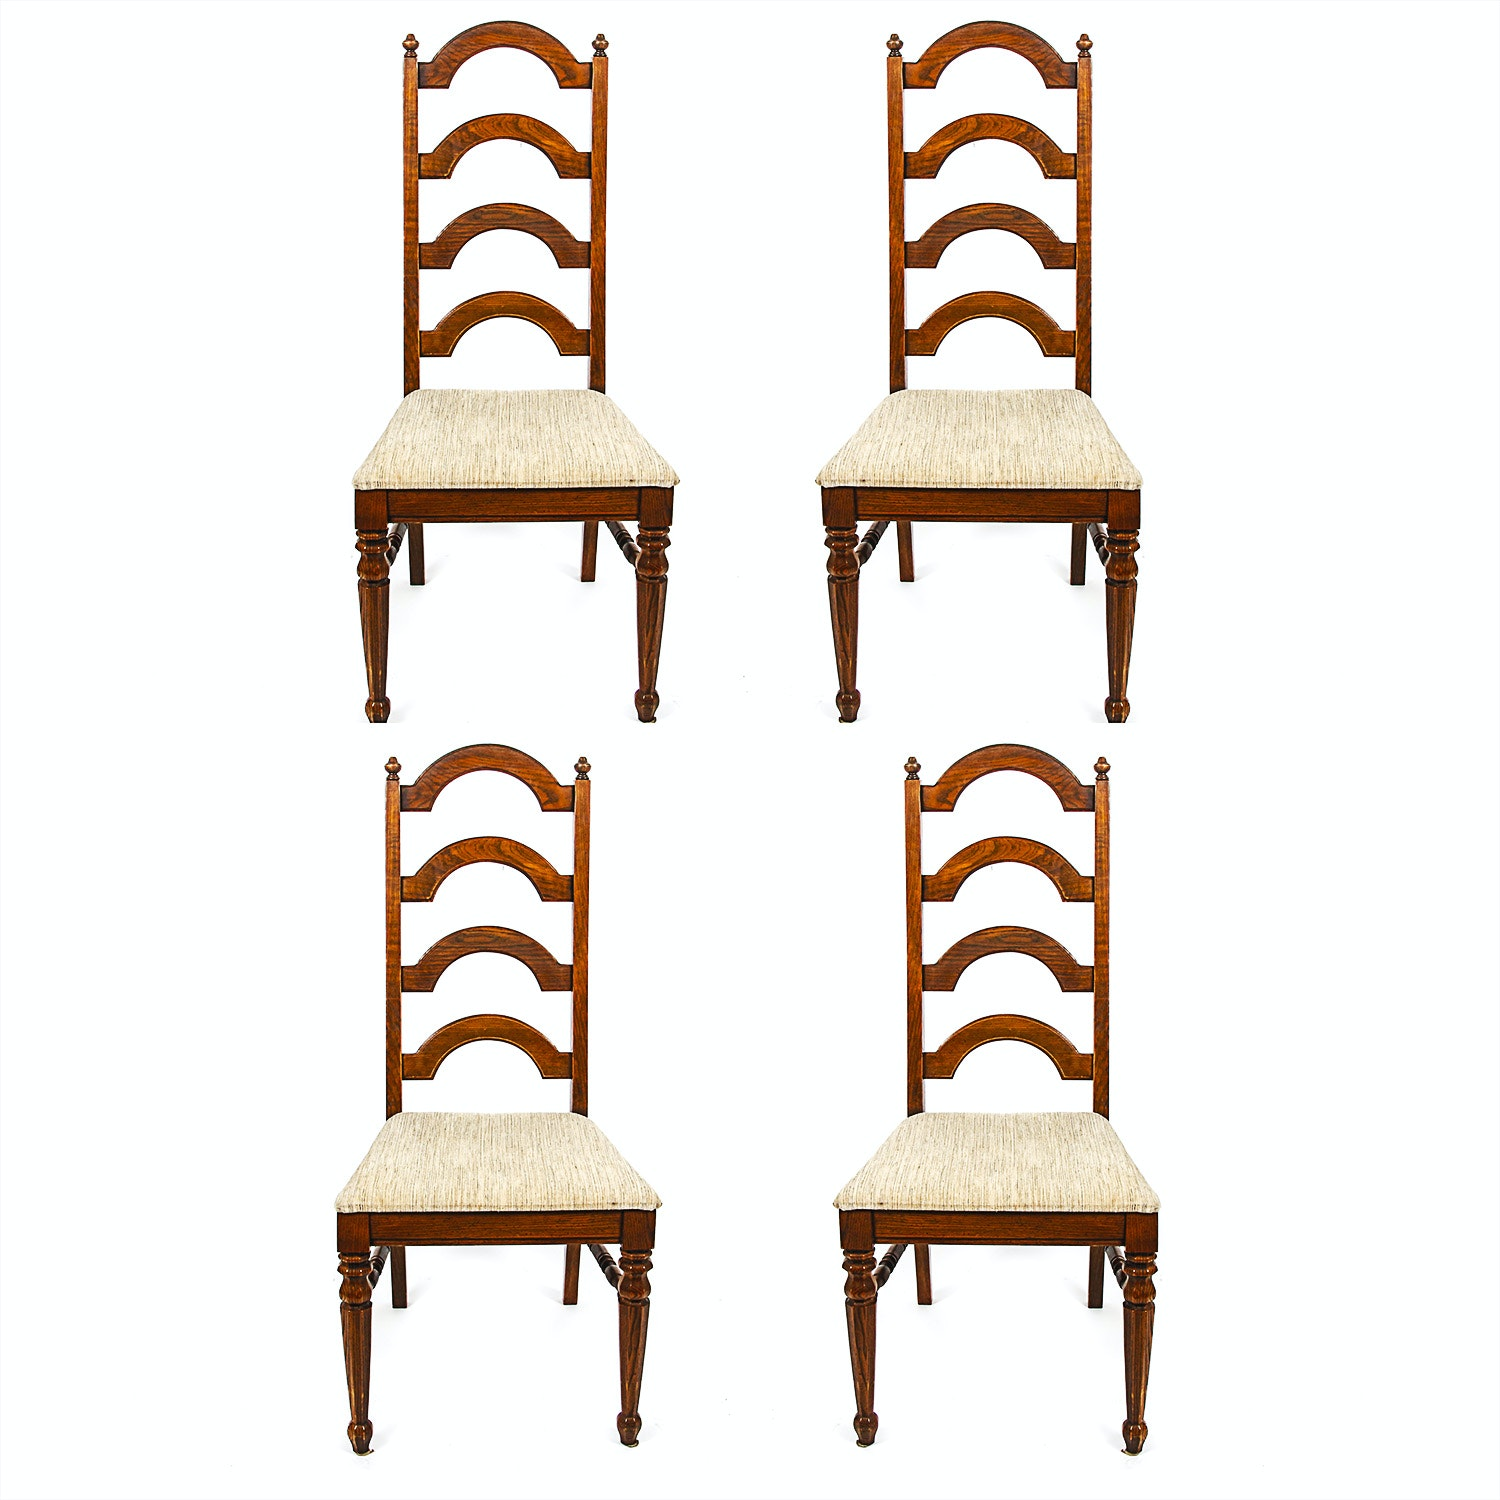 Set of Ladderback Dining Chairs